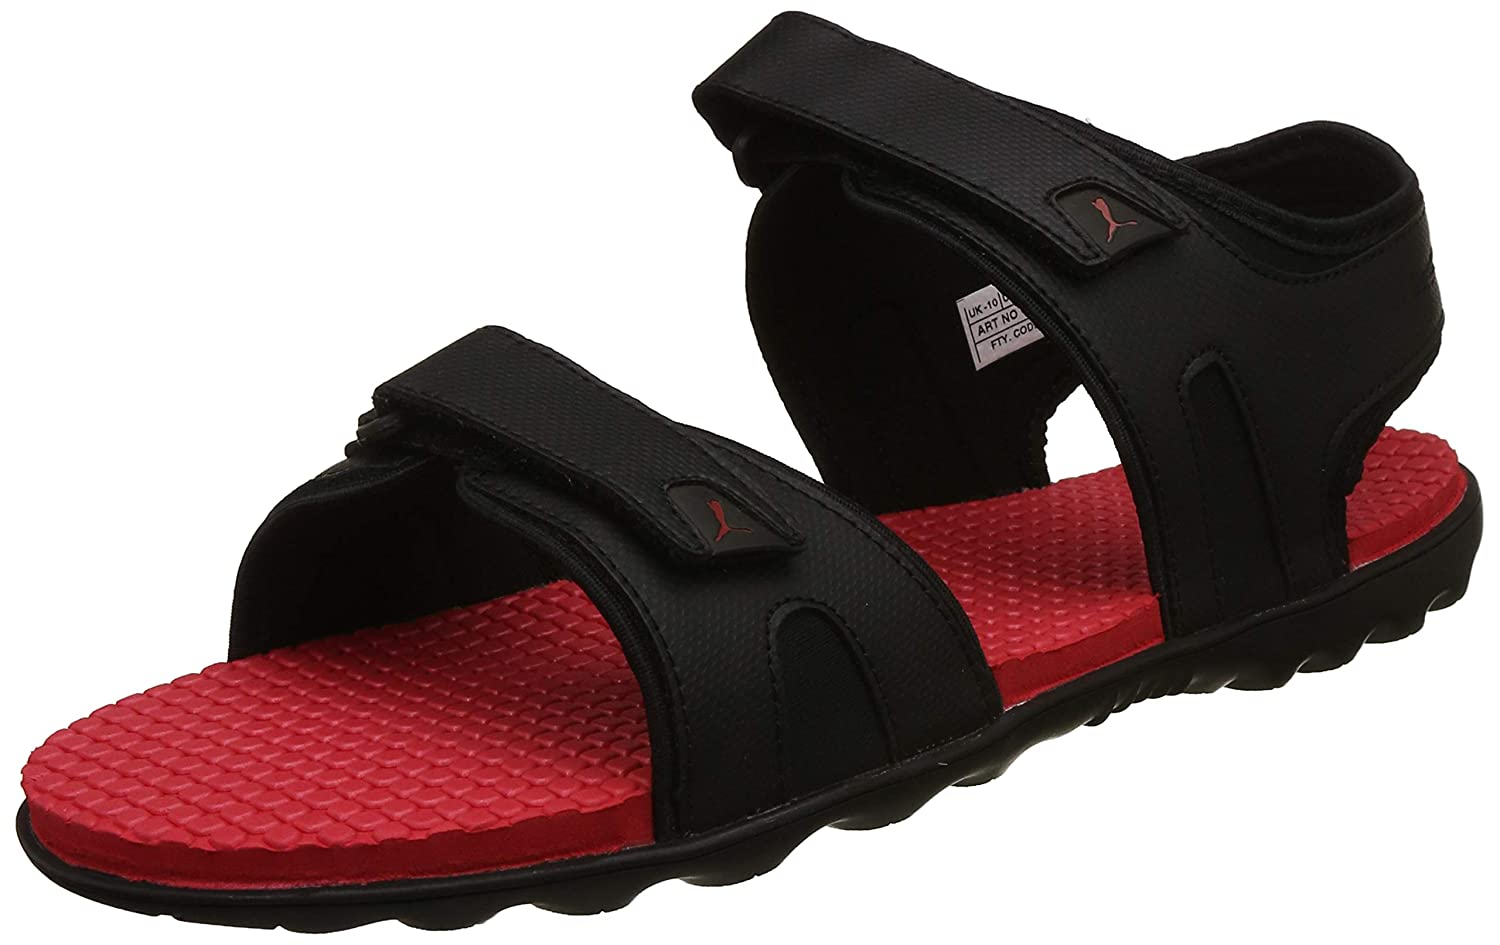 fb90dc679799 Puma Men s Black-High Risk Red Sandals-7 UK India (40.5 EU)  (4059507896476)  Buy Online at Low Prices in India - Amazon.in